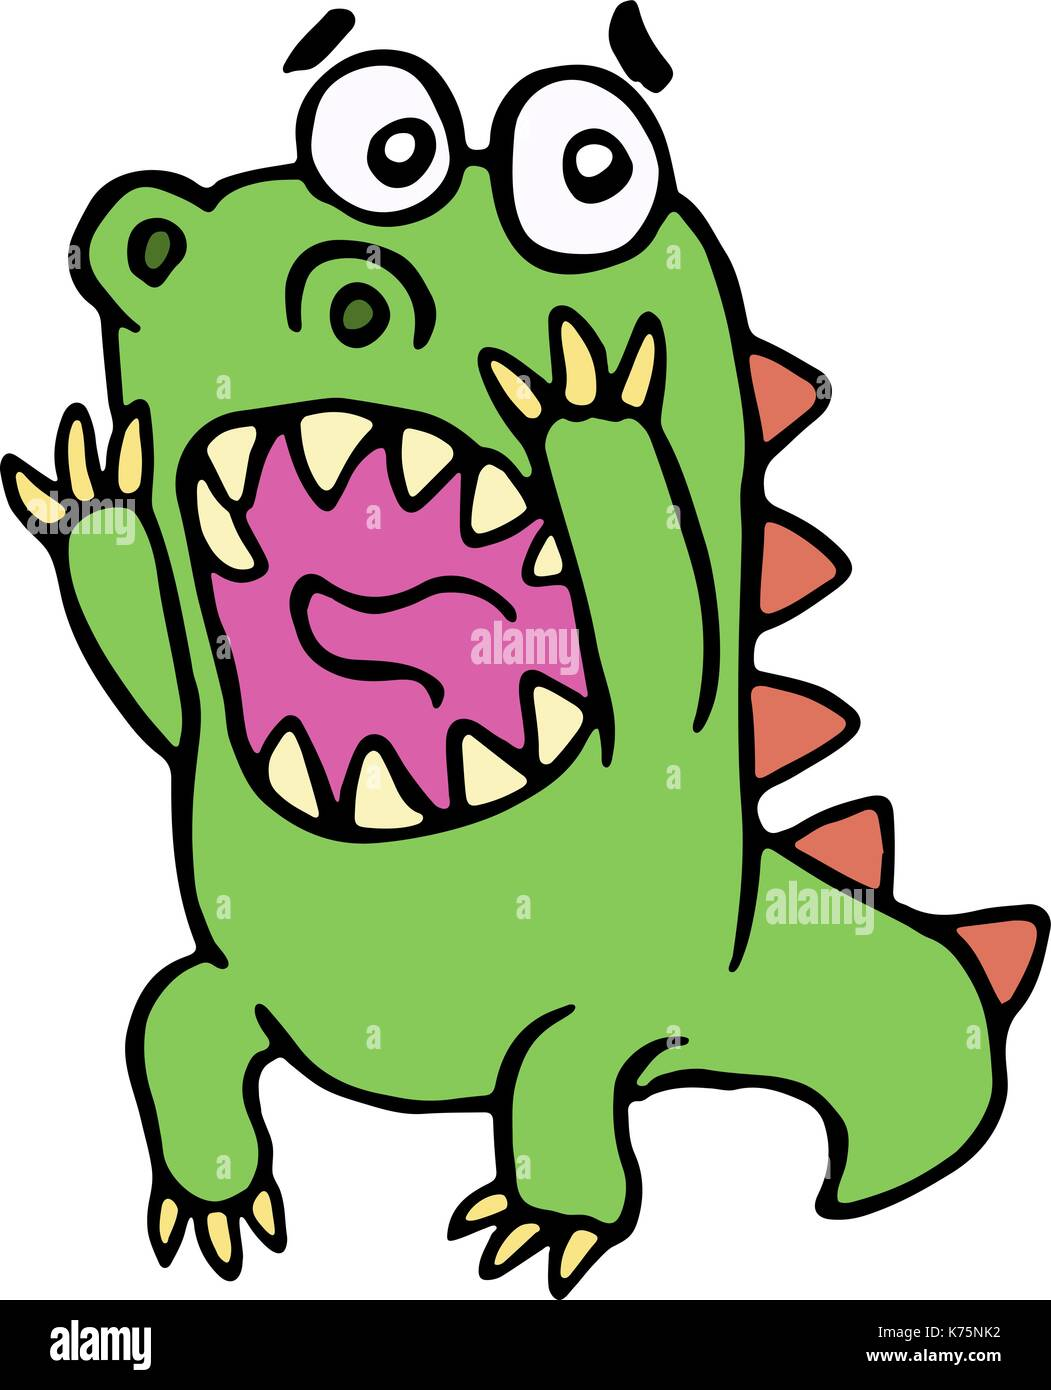 scared dinosaur. vector illustration. cute screaming character. - Stock Image